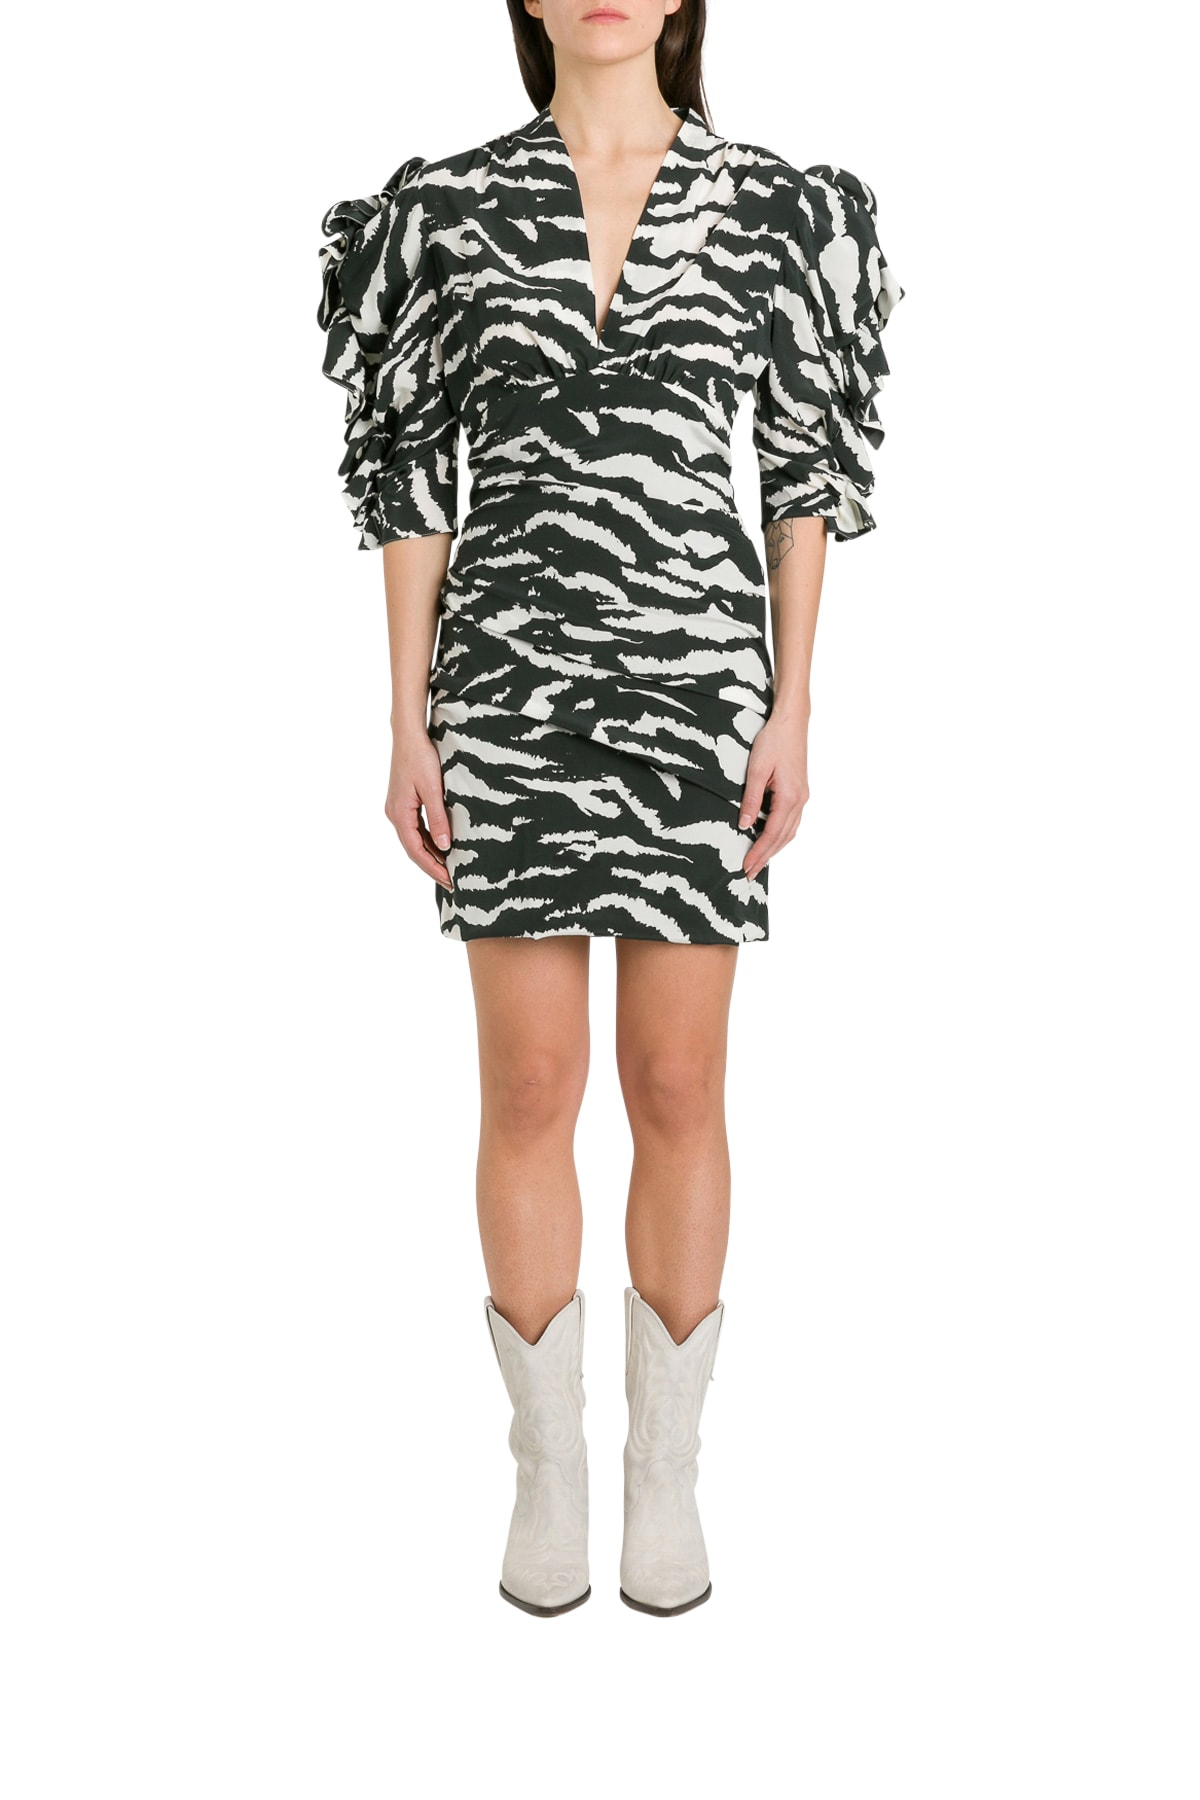 Buy Isabel Marant Farah Mini Dress With Puffer Sleeves In Zebra Print online, shop Isabel Marant with free shipping